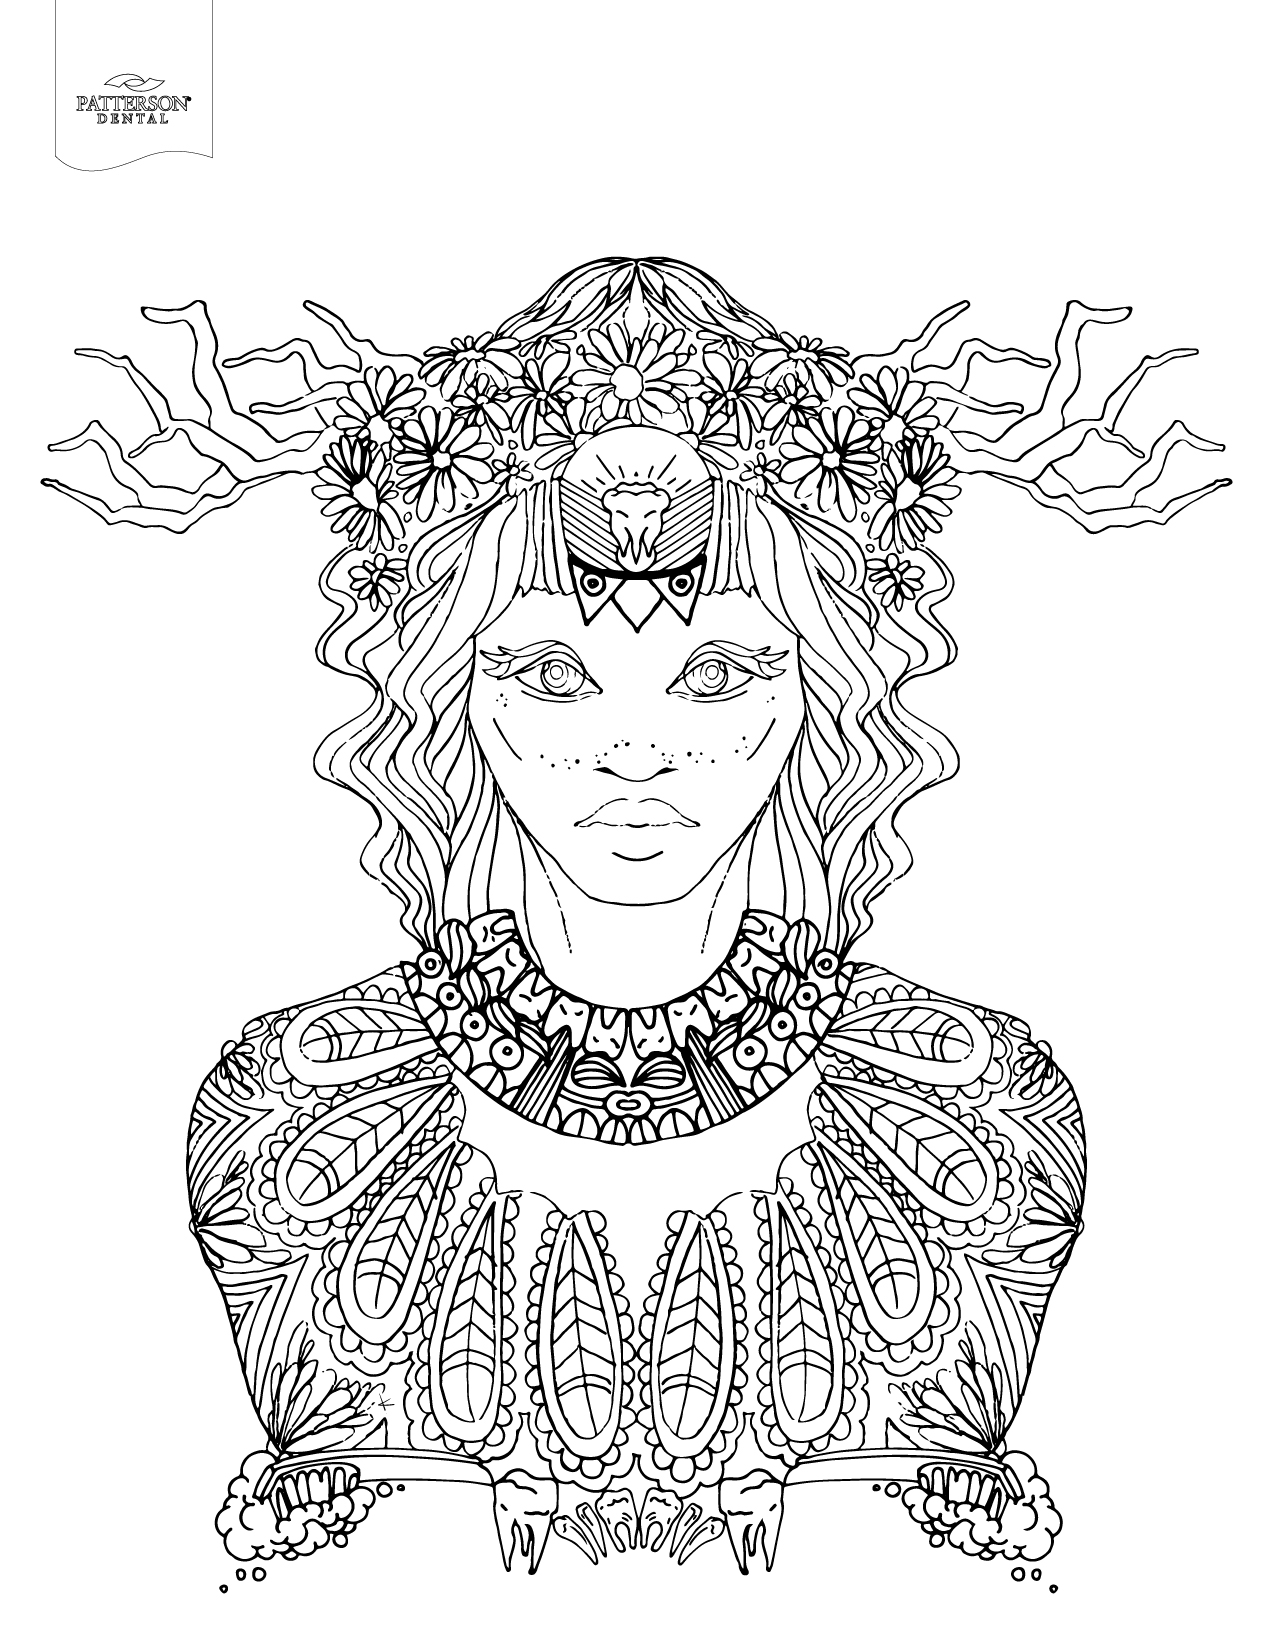 10 Toothy Adult Coloring Pages Printable - Off the Cusp